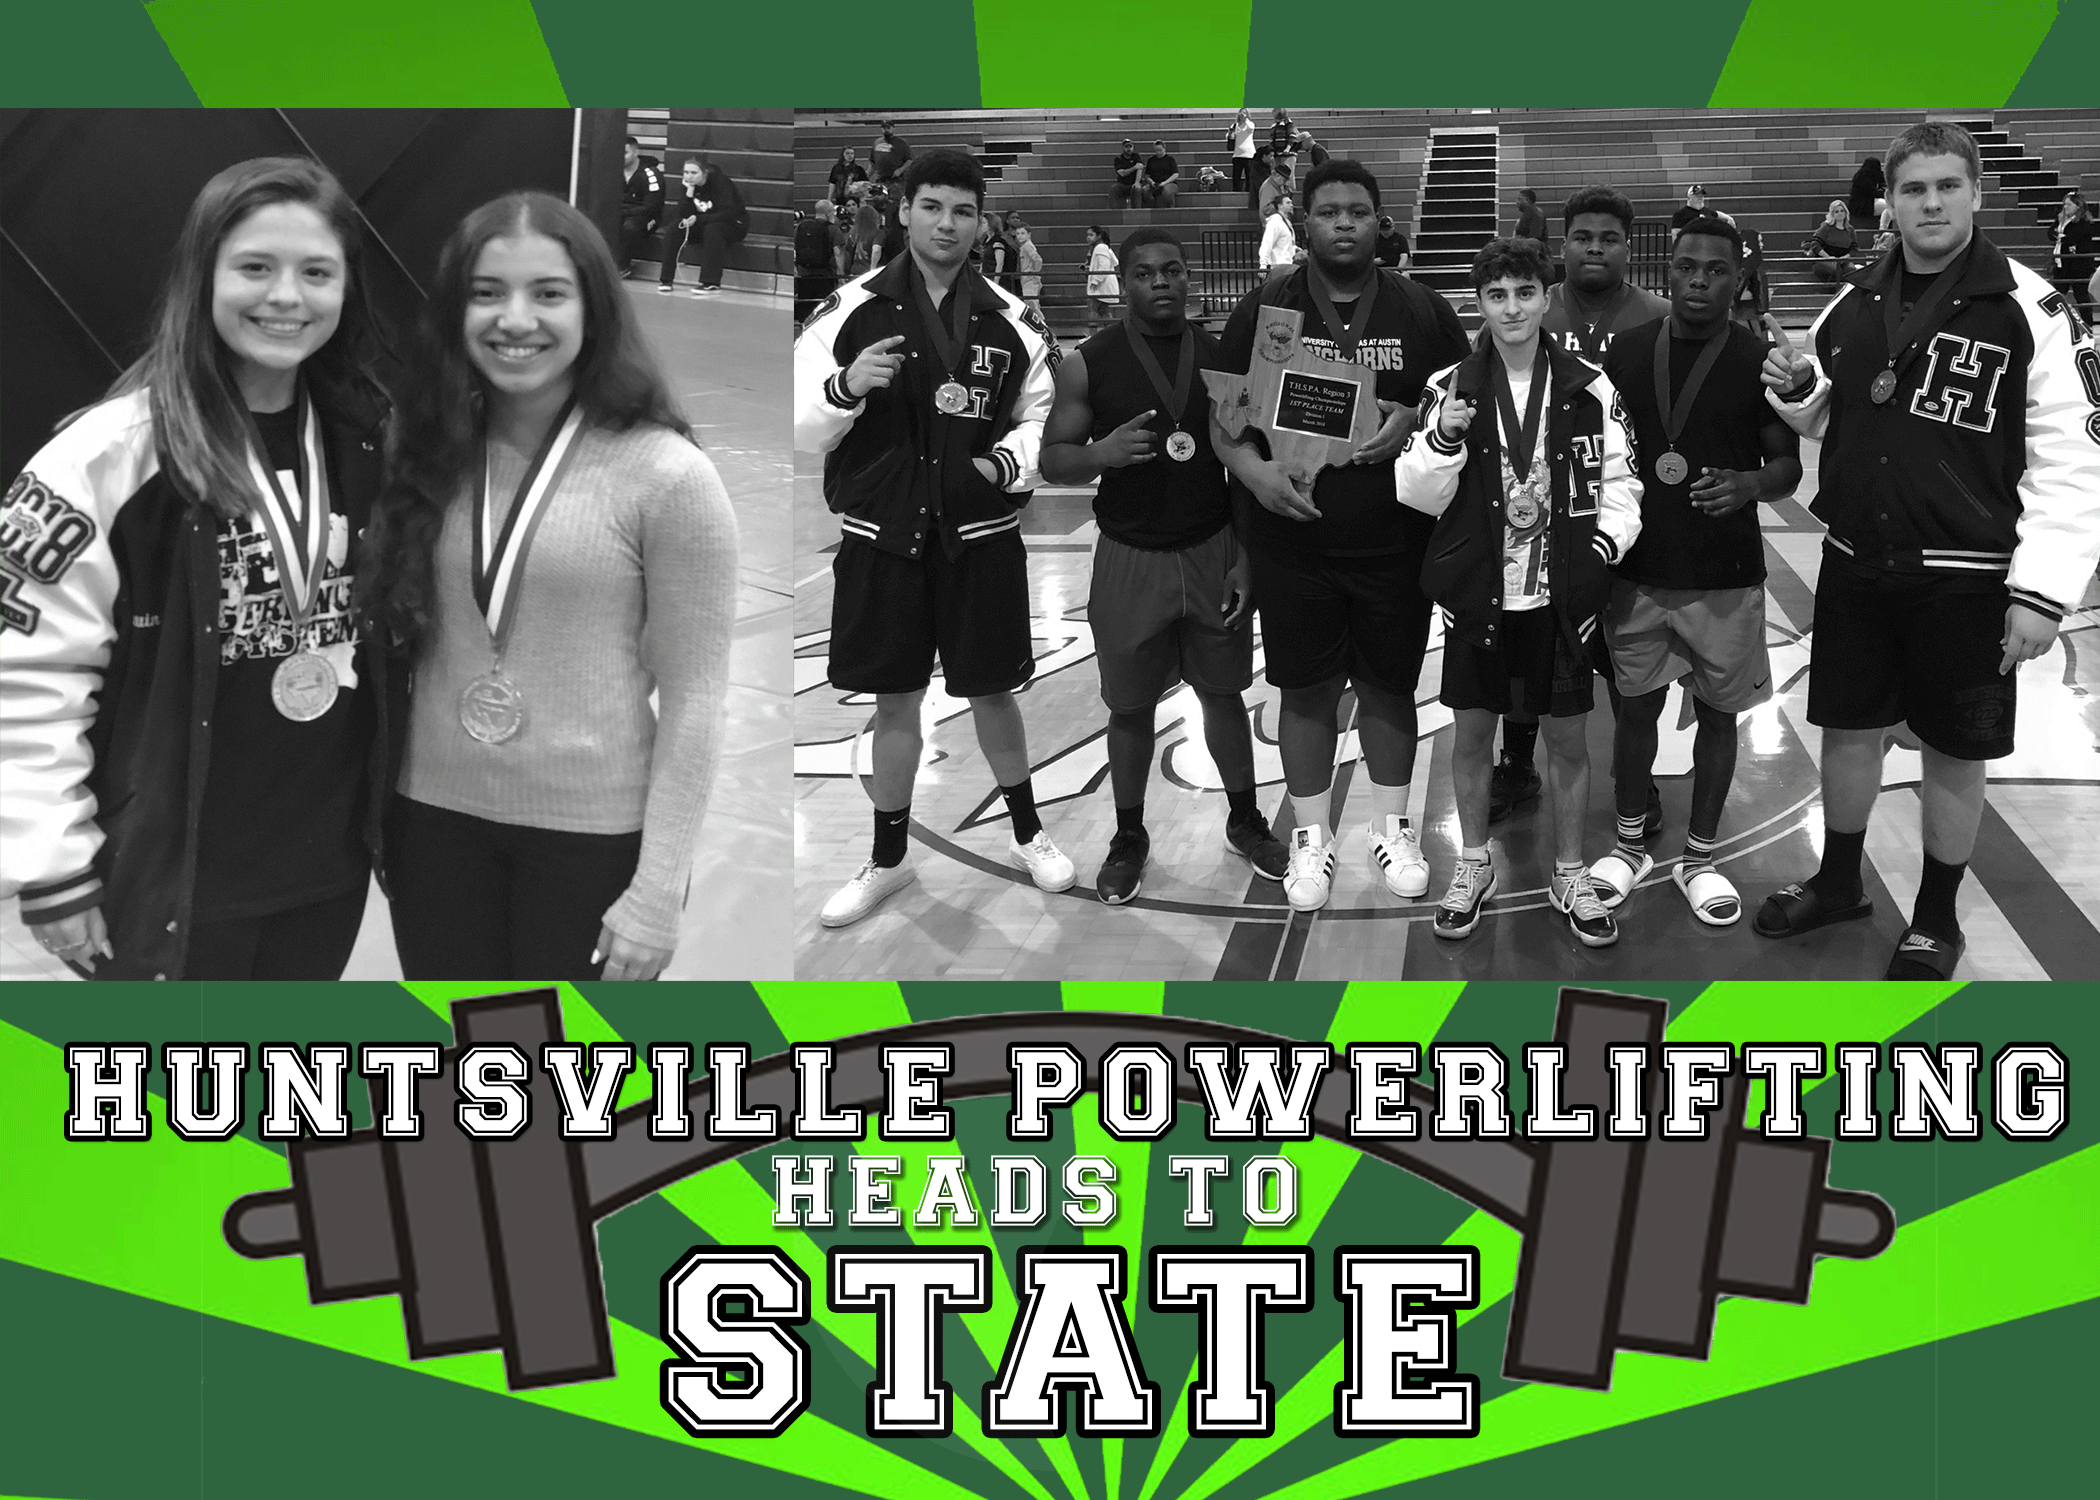 Huntsville Power Lifting Teams head to STATE!